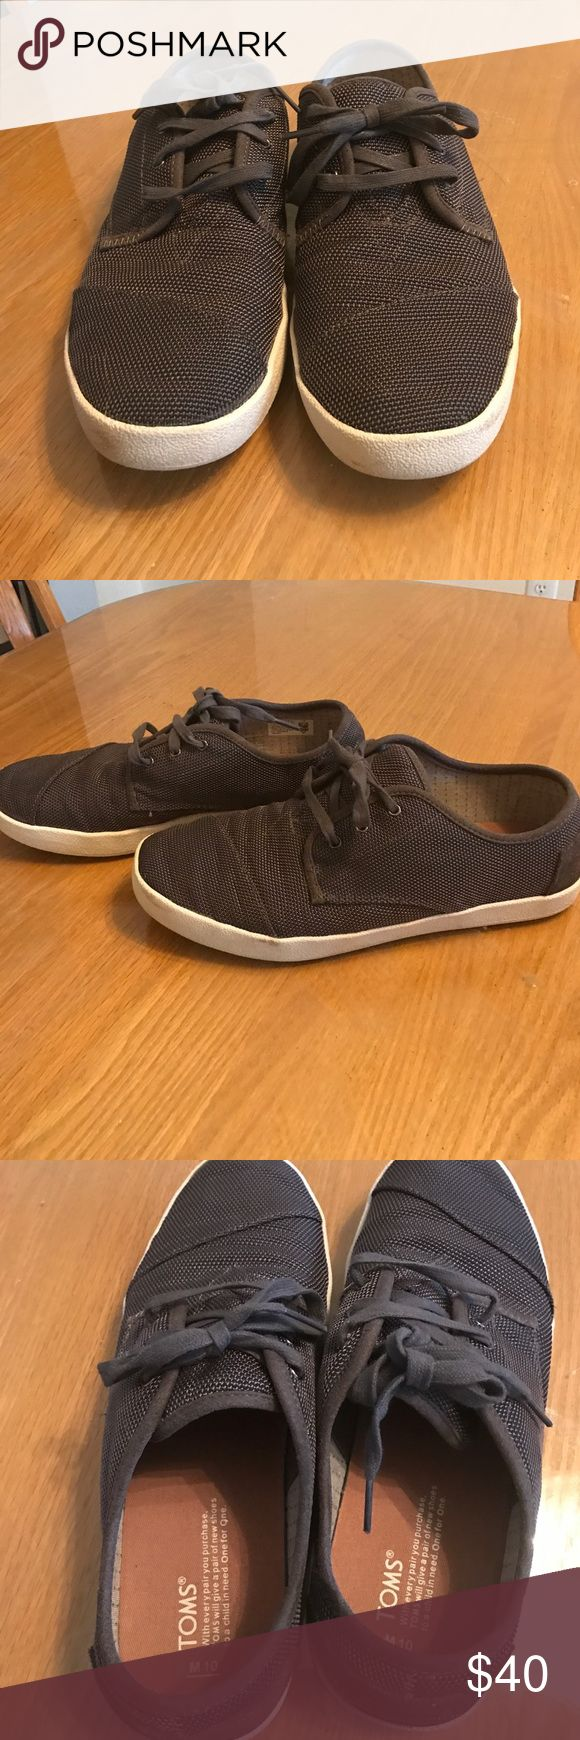 Men's TOMs sneakers Like new. Worn once or twice. Only has a minimal amount of scuffing on bottom but otherwise like new. TOMS Shoes Sneakers